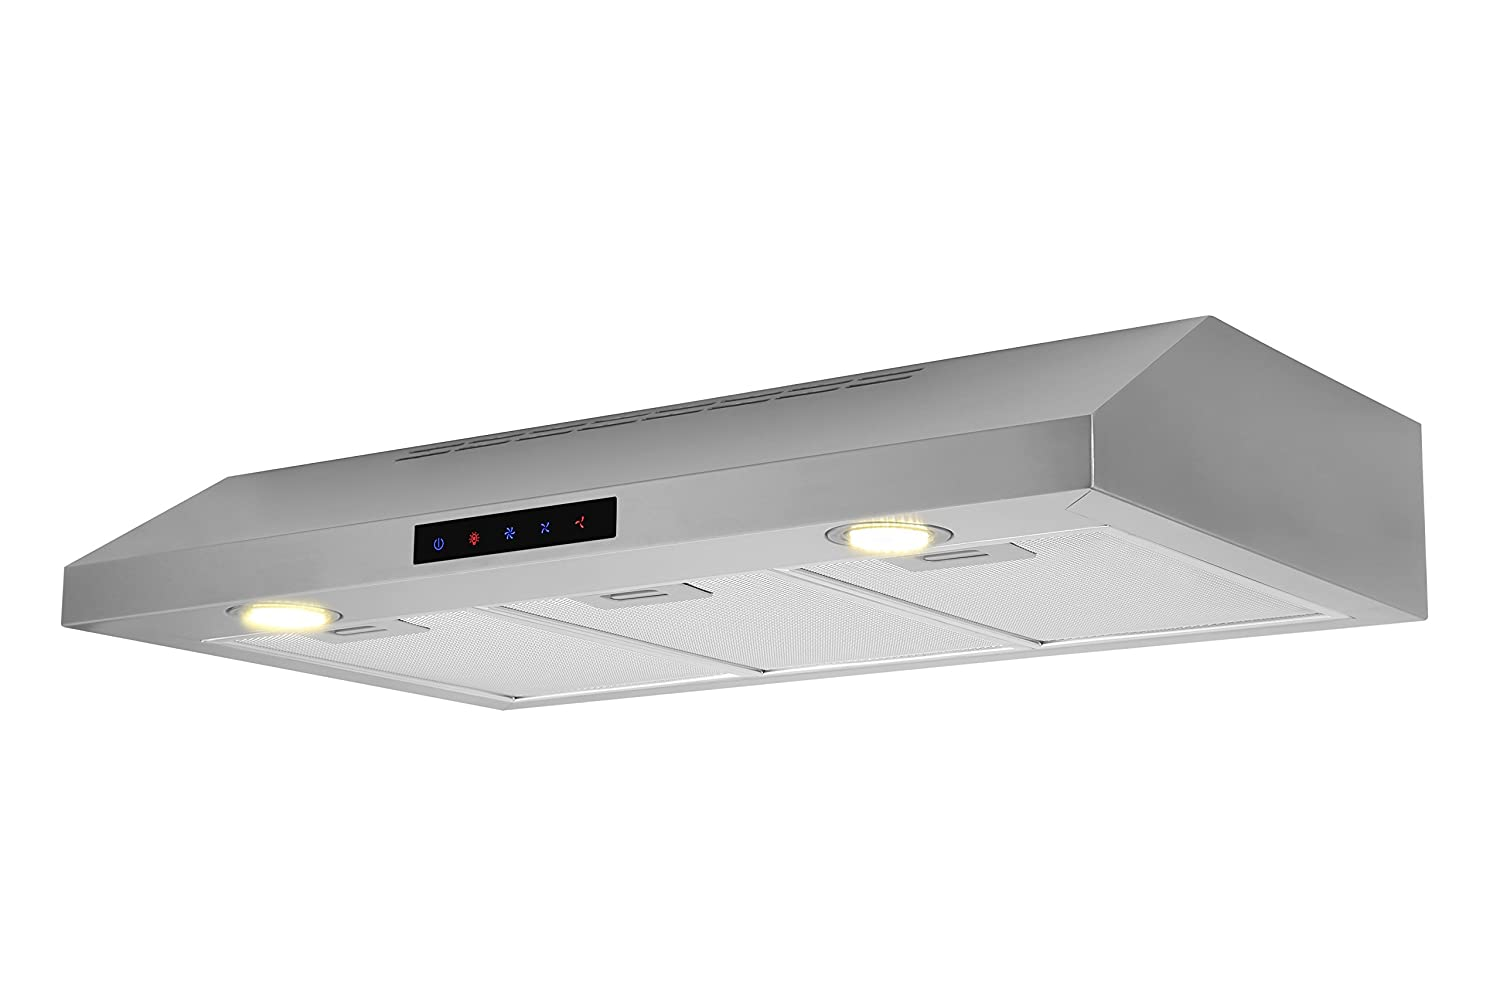 Kitchen Bath Collection WUC75-LED Stainless Steel Under-Cabinet Range Hood, 30""